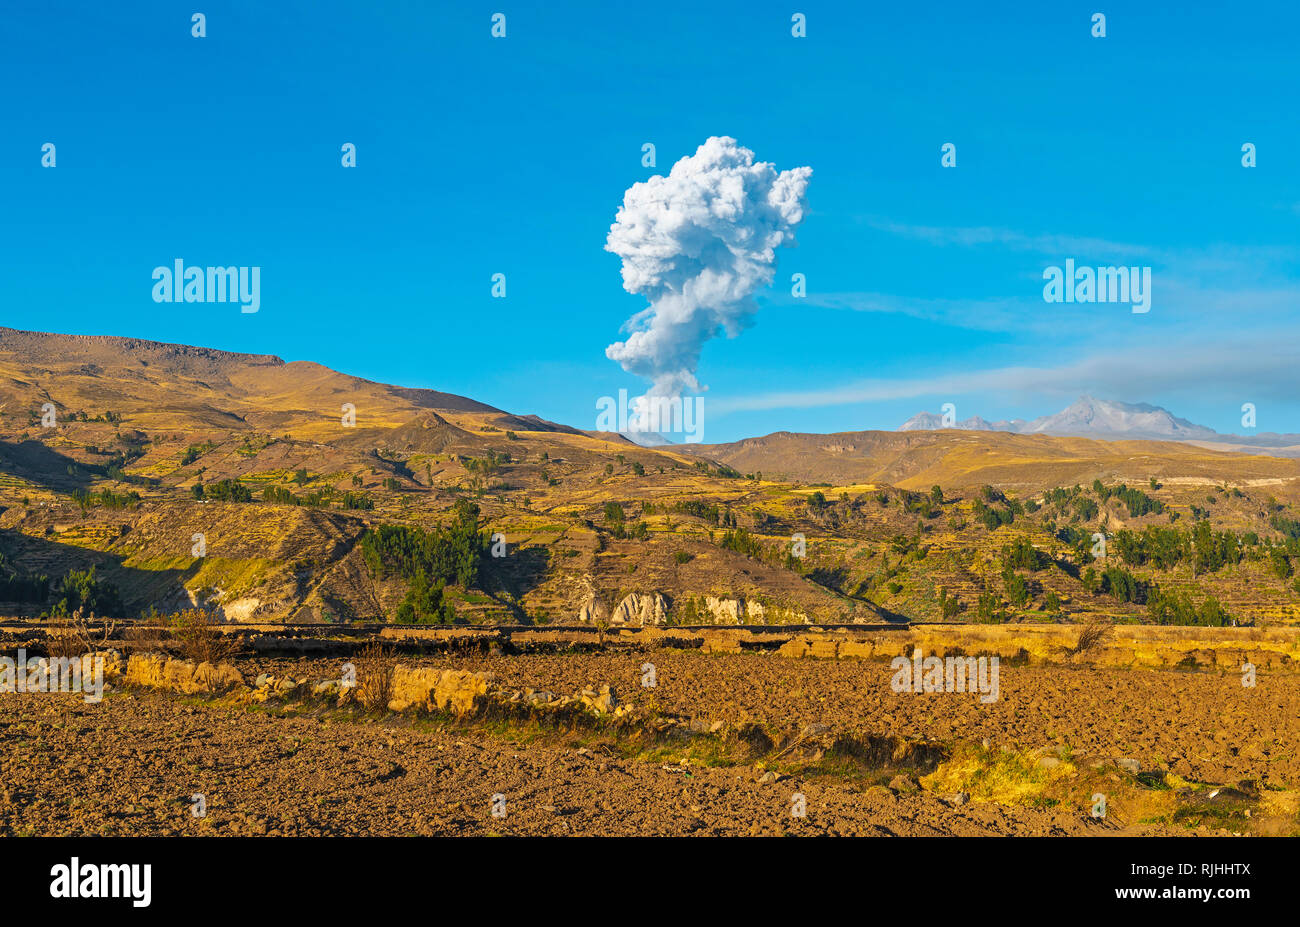 Ash clouds explosion during an eruption of the Sabancaya volcano nearby the Colca Canyon between Chicay and Arequipa, Peru. - Stock Image